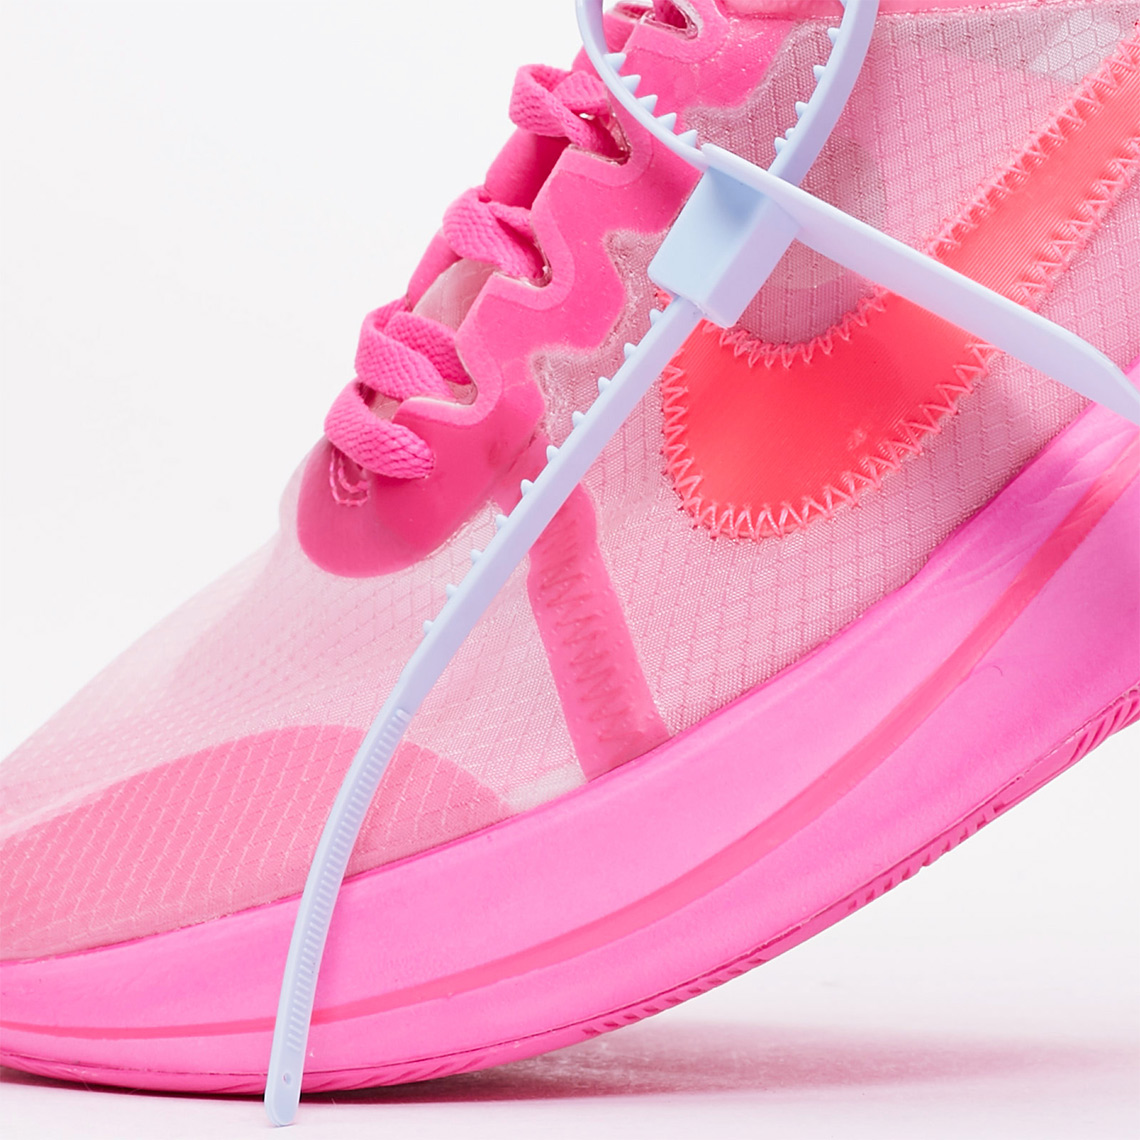 off-white-nike-zoom-fly-pink-buying-guide-Aj4588-600-6 - SneakersBR daaeeb63a24